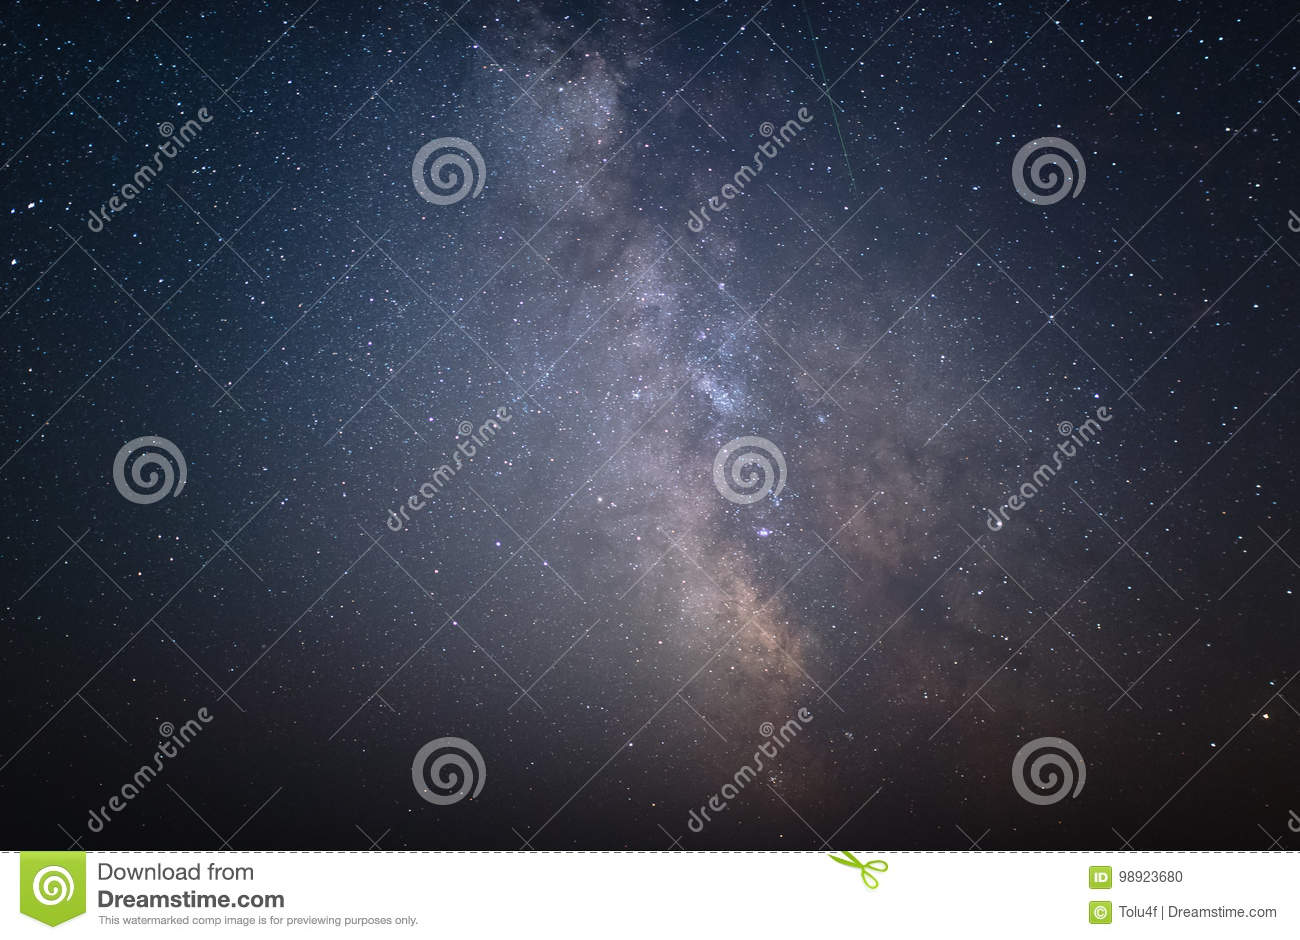 The center of our home galaxy and Andromeda galaxy, the Milky Way rising over the field